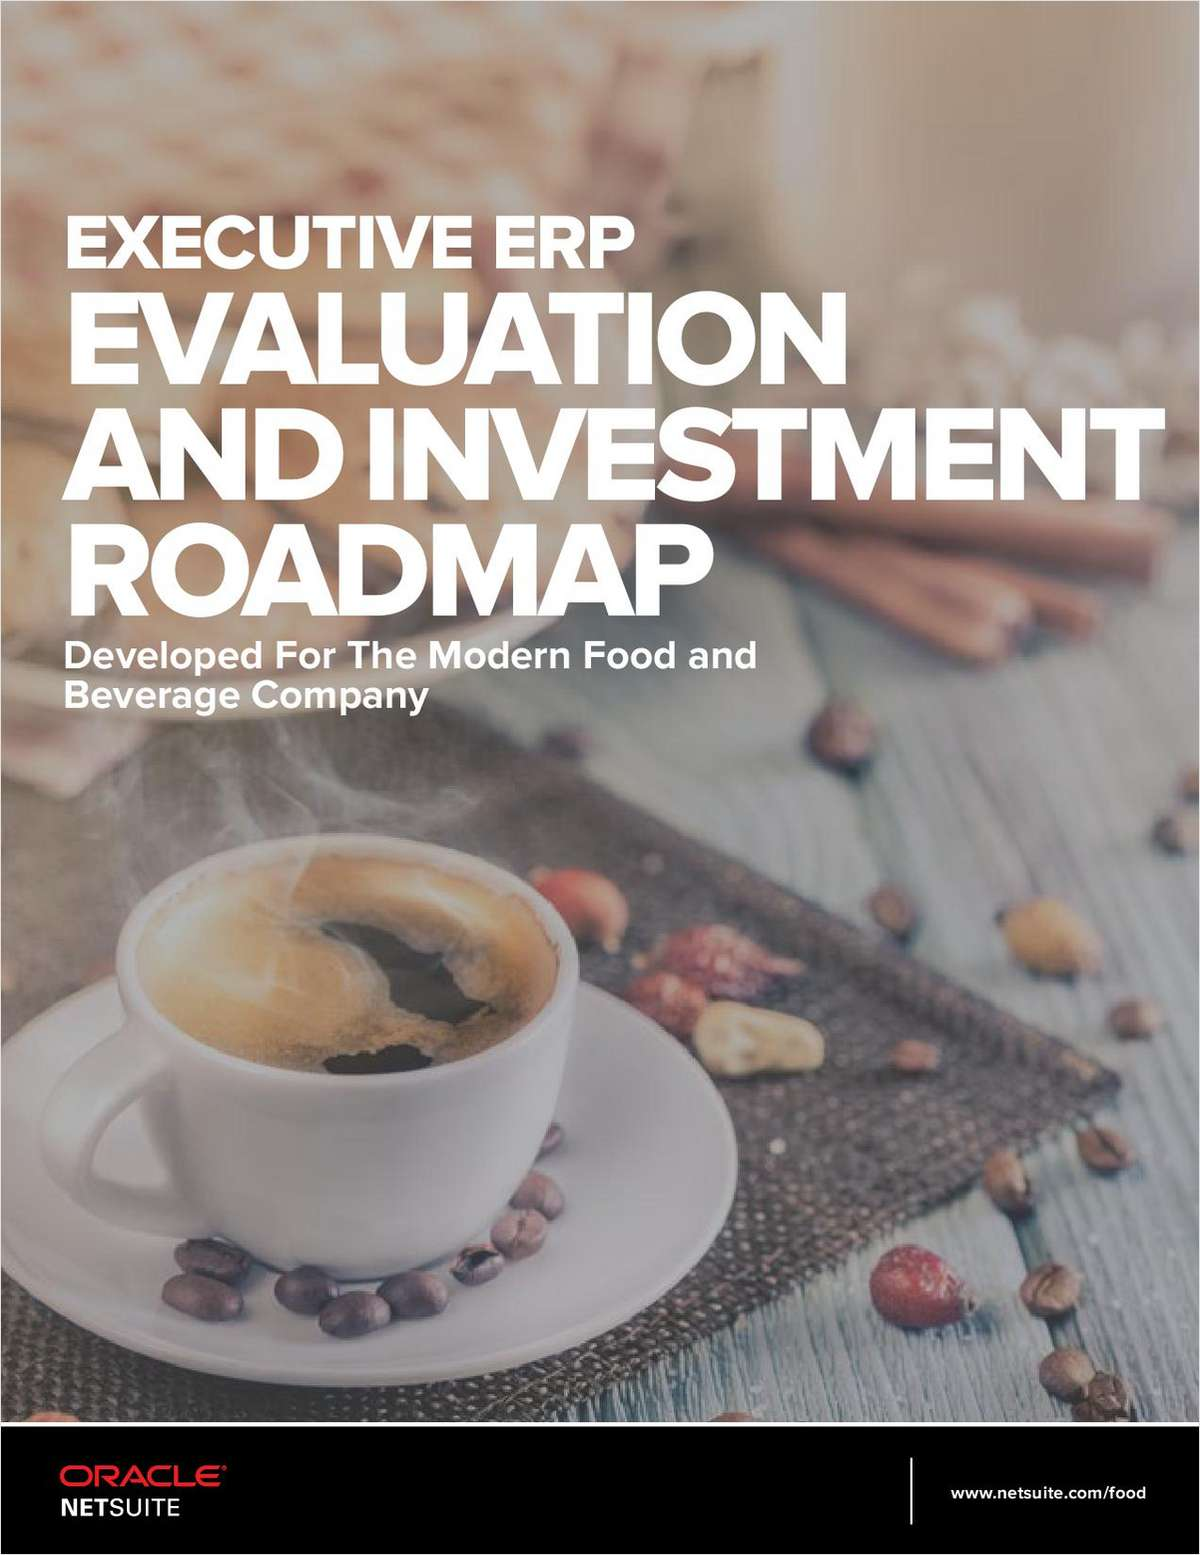 Executive ERP Evaluation and Investment Roadmap: Developed for the Food and Beverage Company